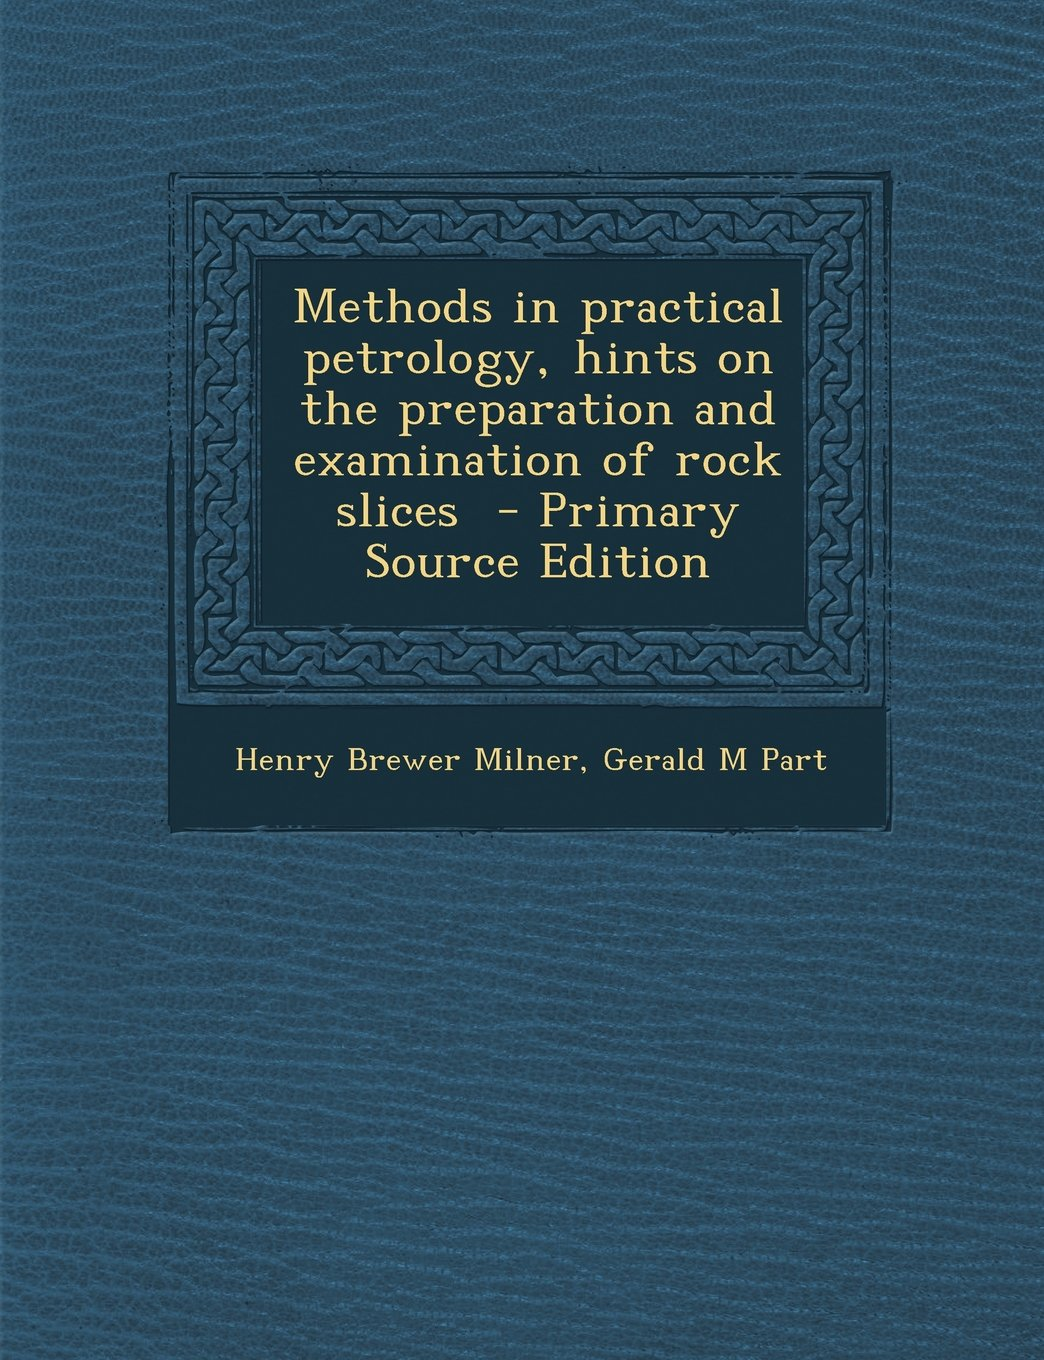 Download Methods in Practical Petrology, Hints on the Preparation and Examination of Rock Slices - Primary Source Edition pdf epub